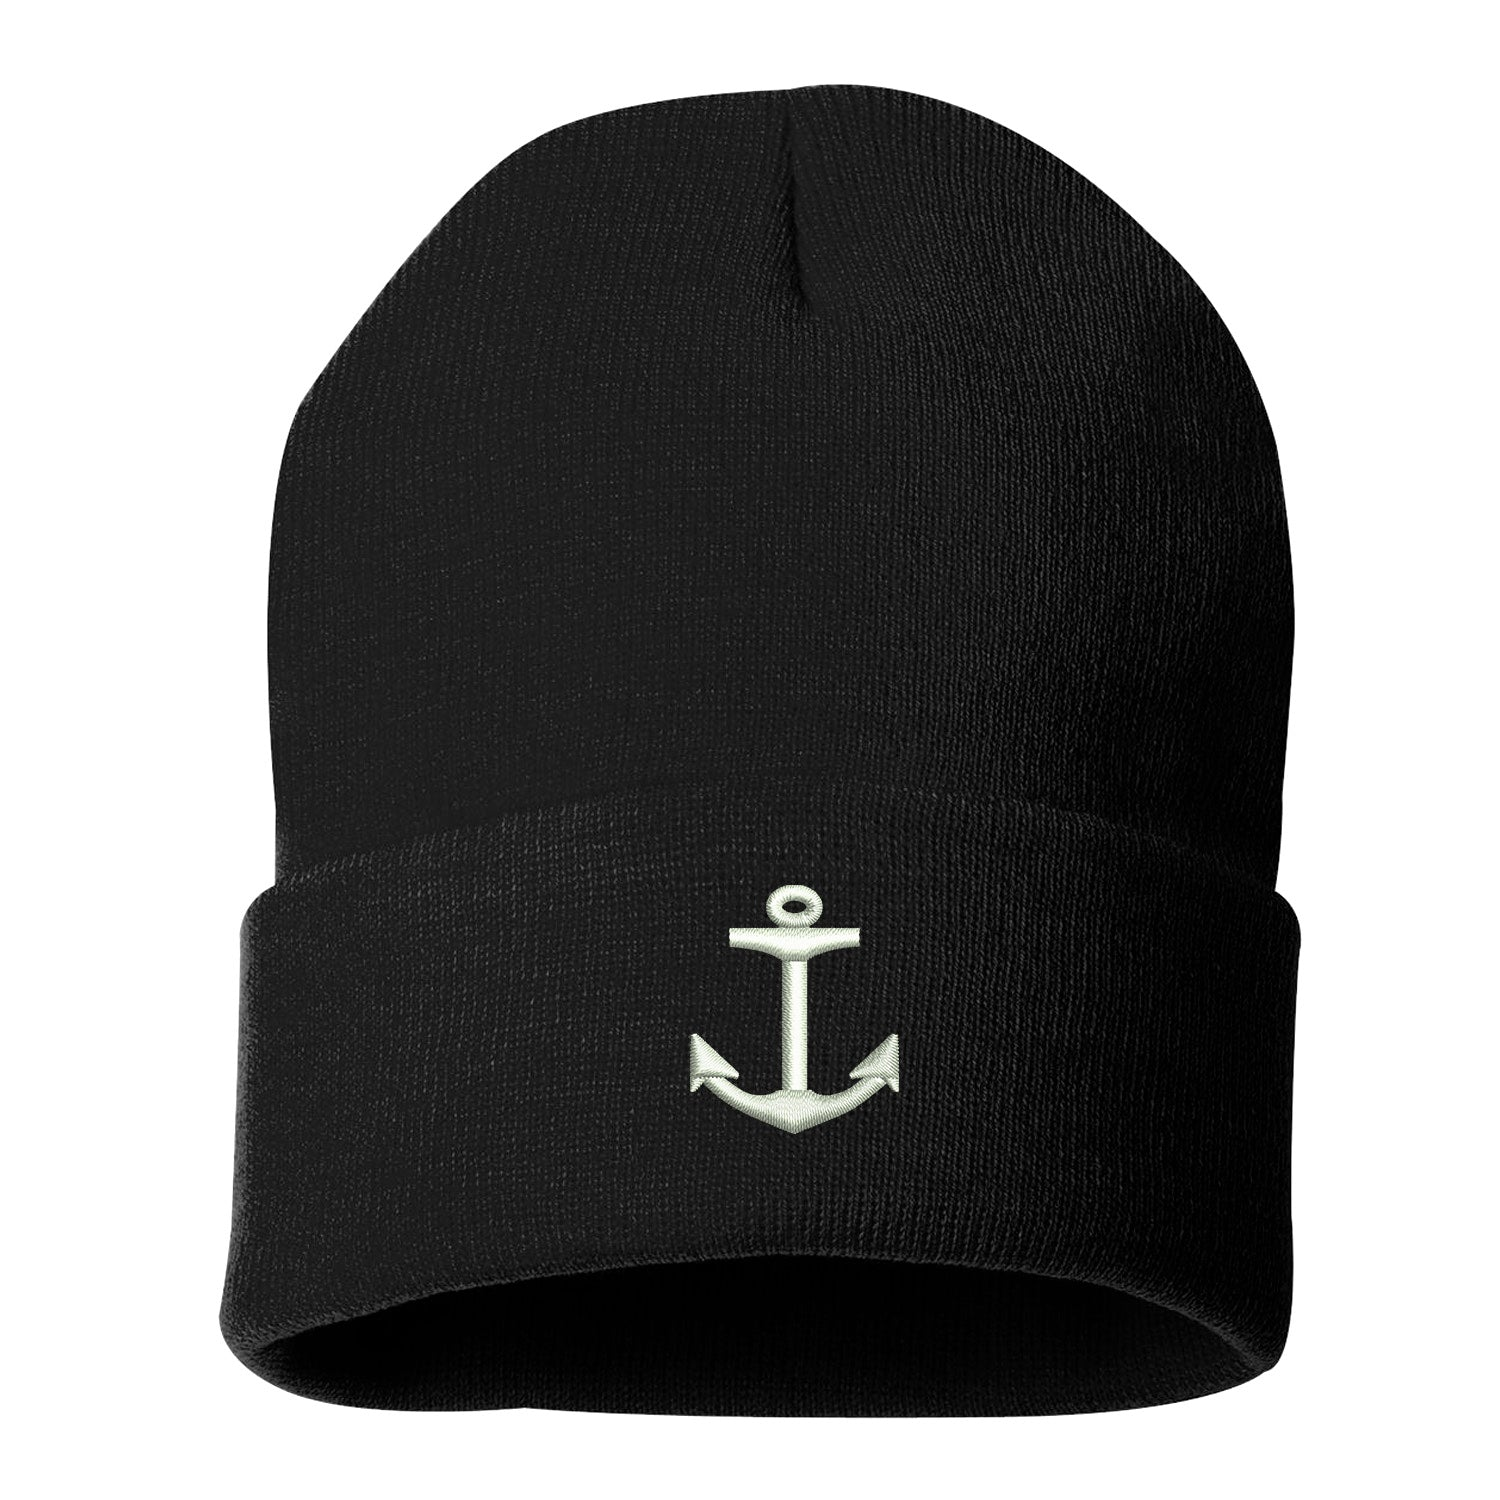 Anchor Cuffed Beanie, Cuffed Beanie Cap, Anchor Embroidery, Embroidered Beanie Cap, Custom Embroidery, Navy Cuffed Beanie, DSY Lifestyle Beanie, Made in LA